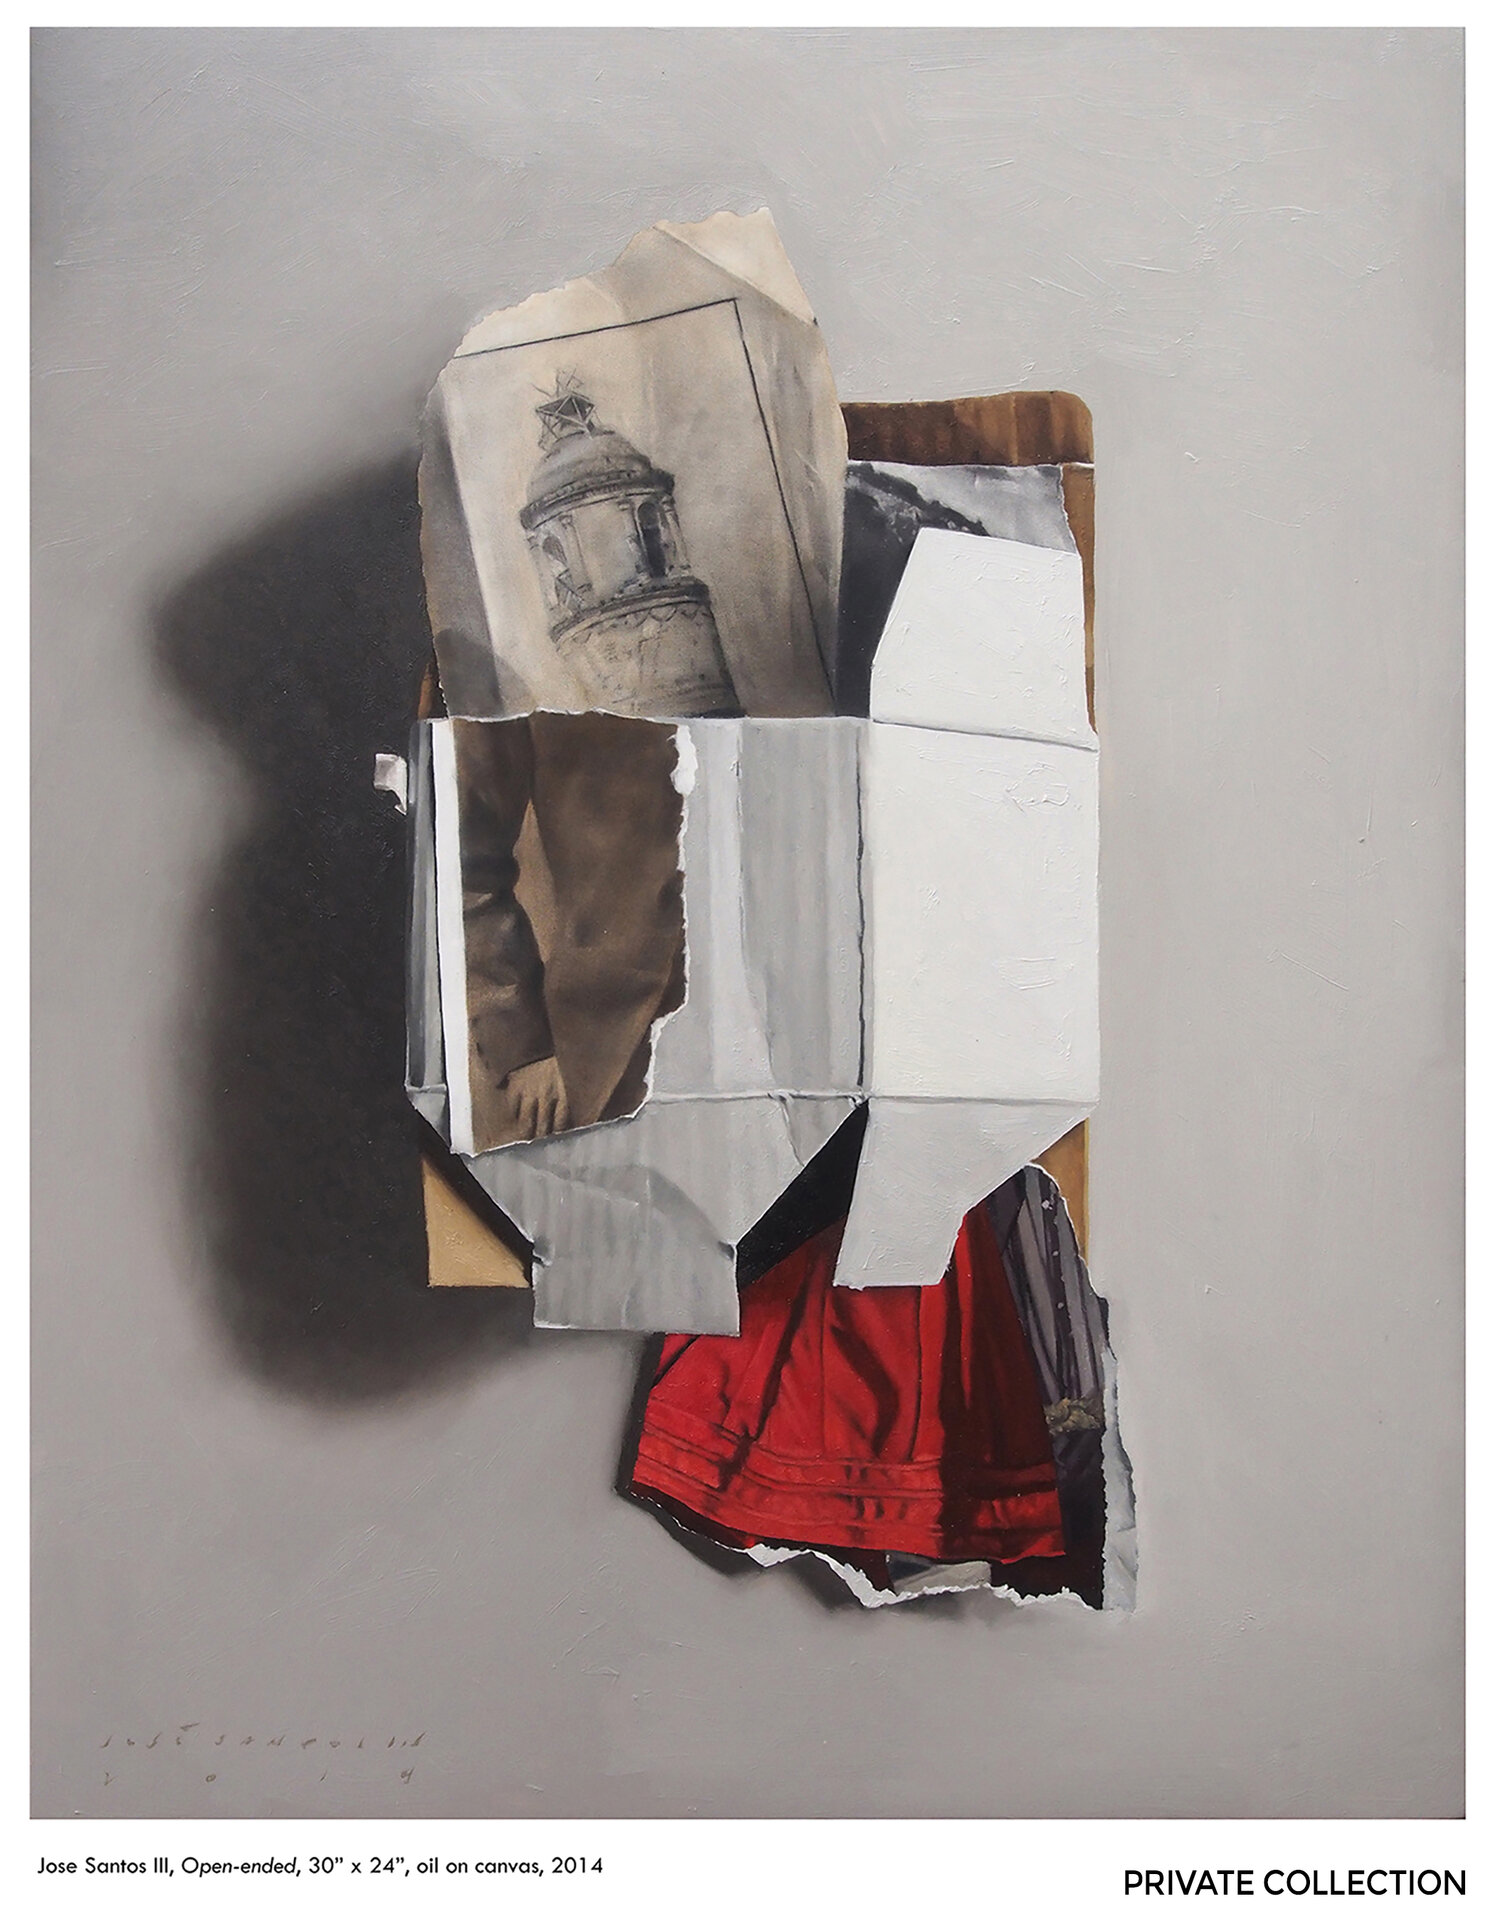 "Jose Santos III,  Open-ended , 2014, Oil on canvas, 30"" x 24"". Courtesy of the artist and The Drawing Room."